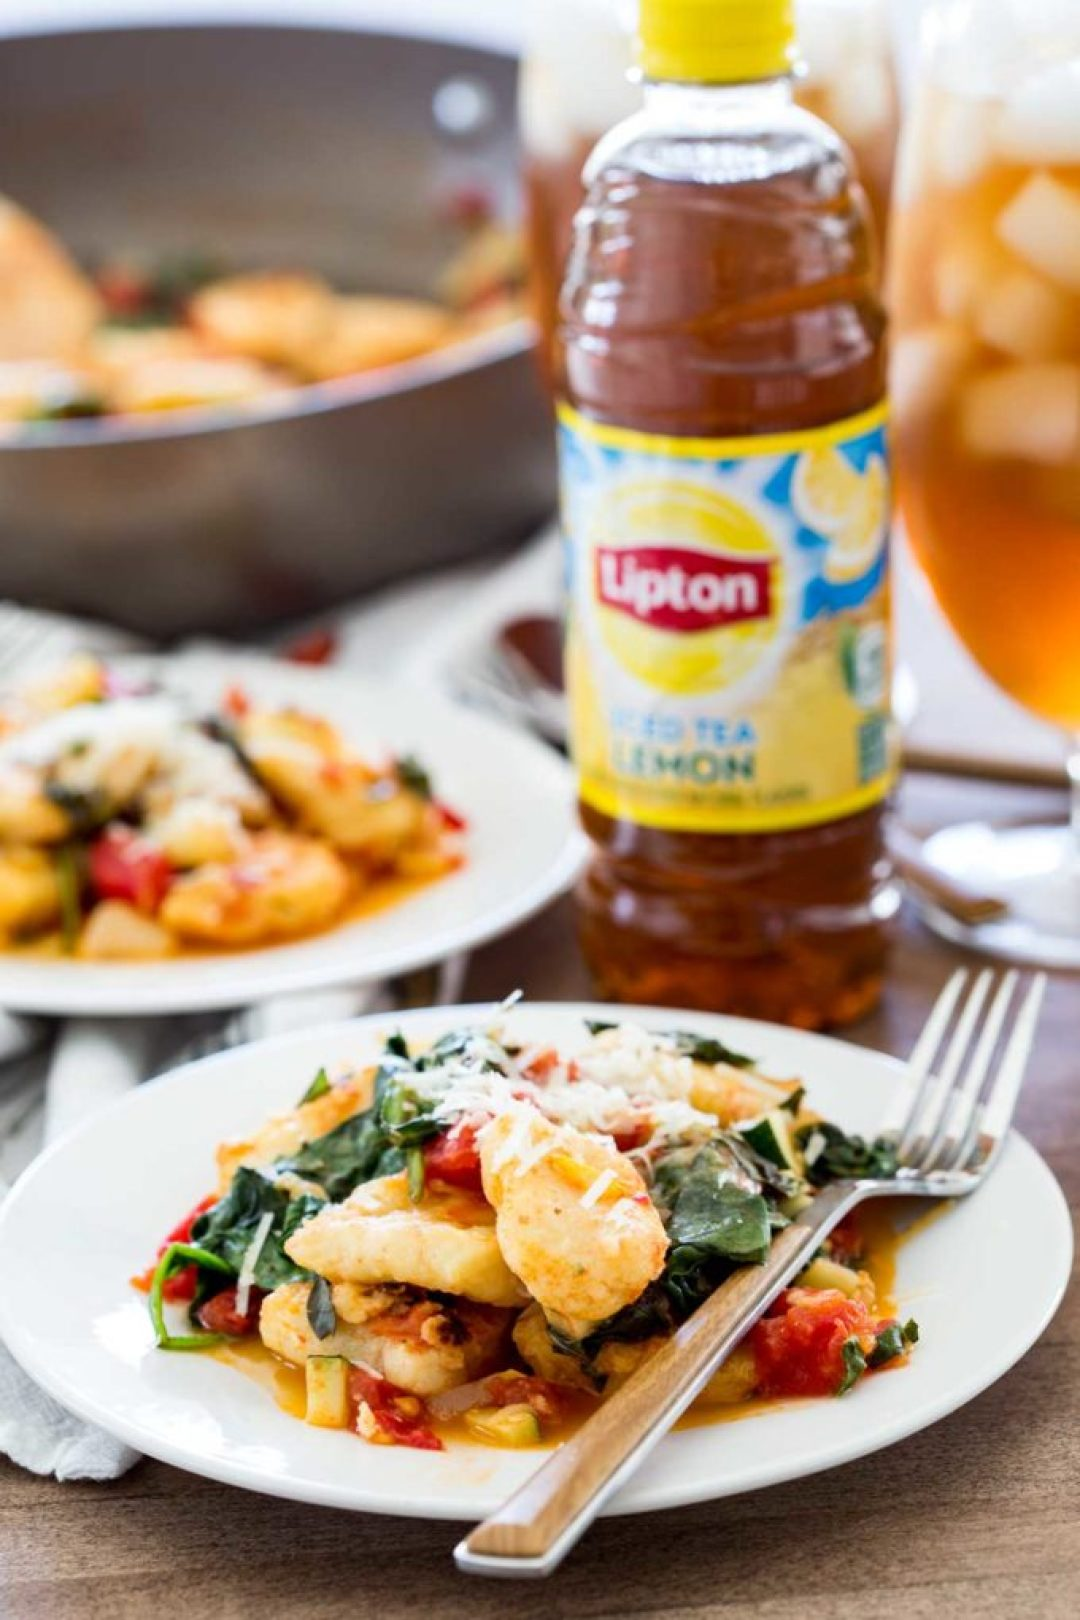 gnocchi-and-lipton